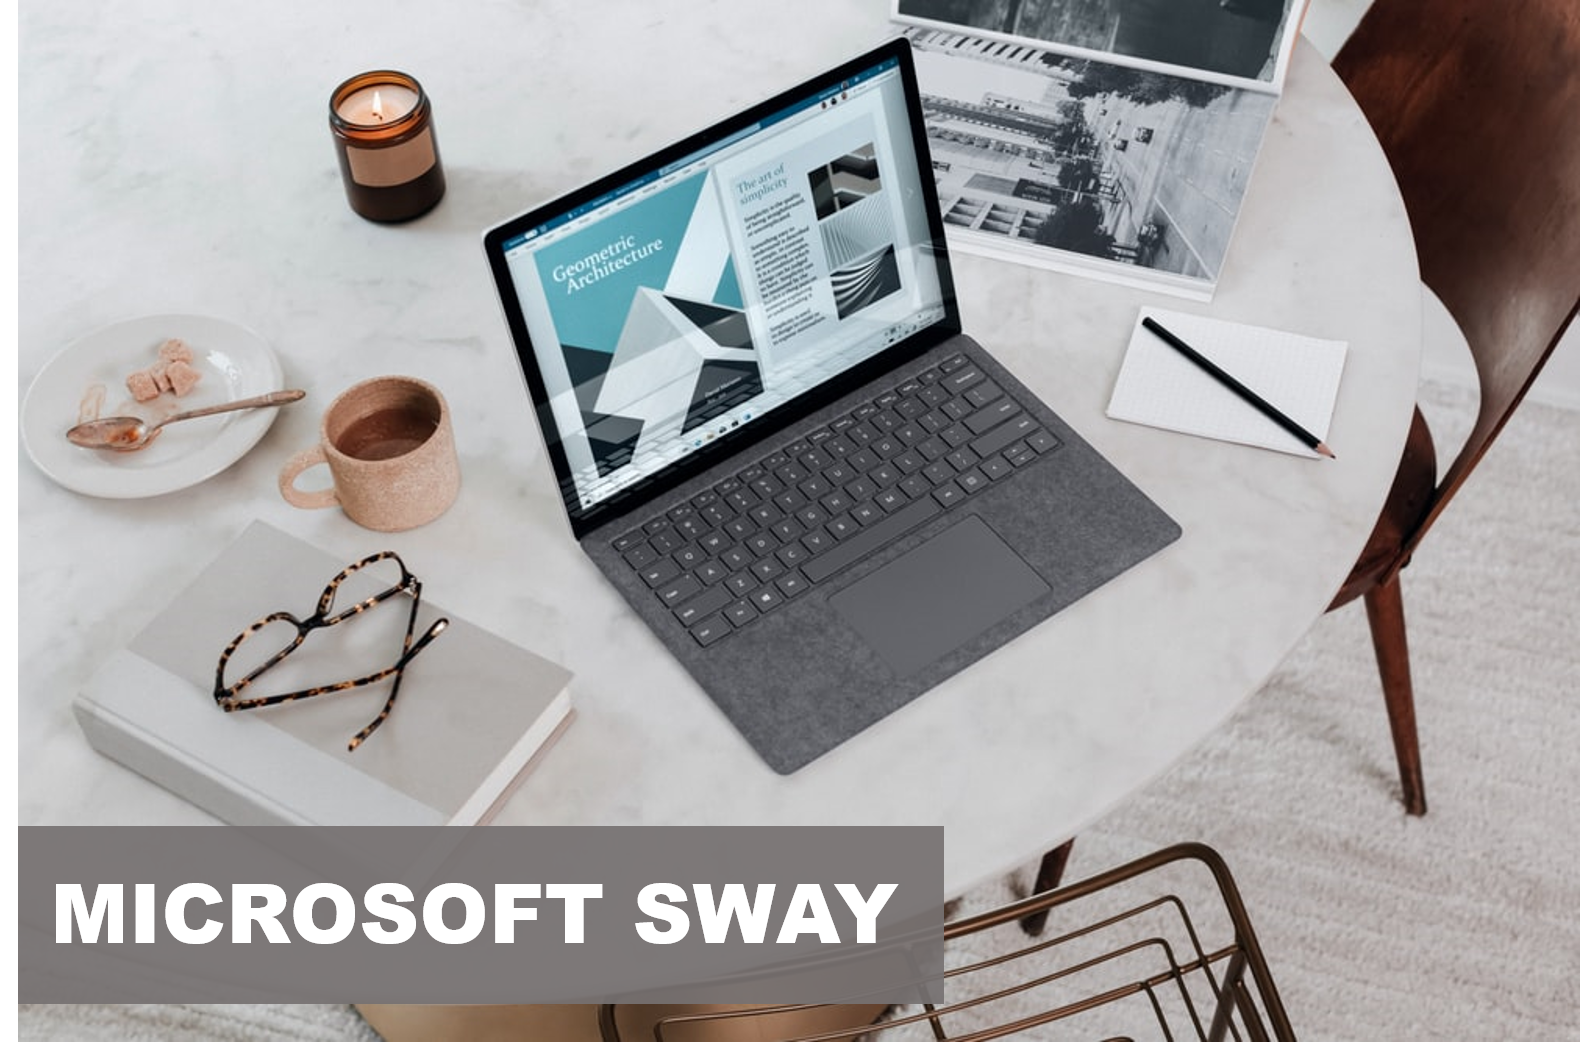 Learning More About Microsoft Sway